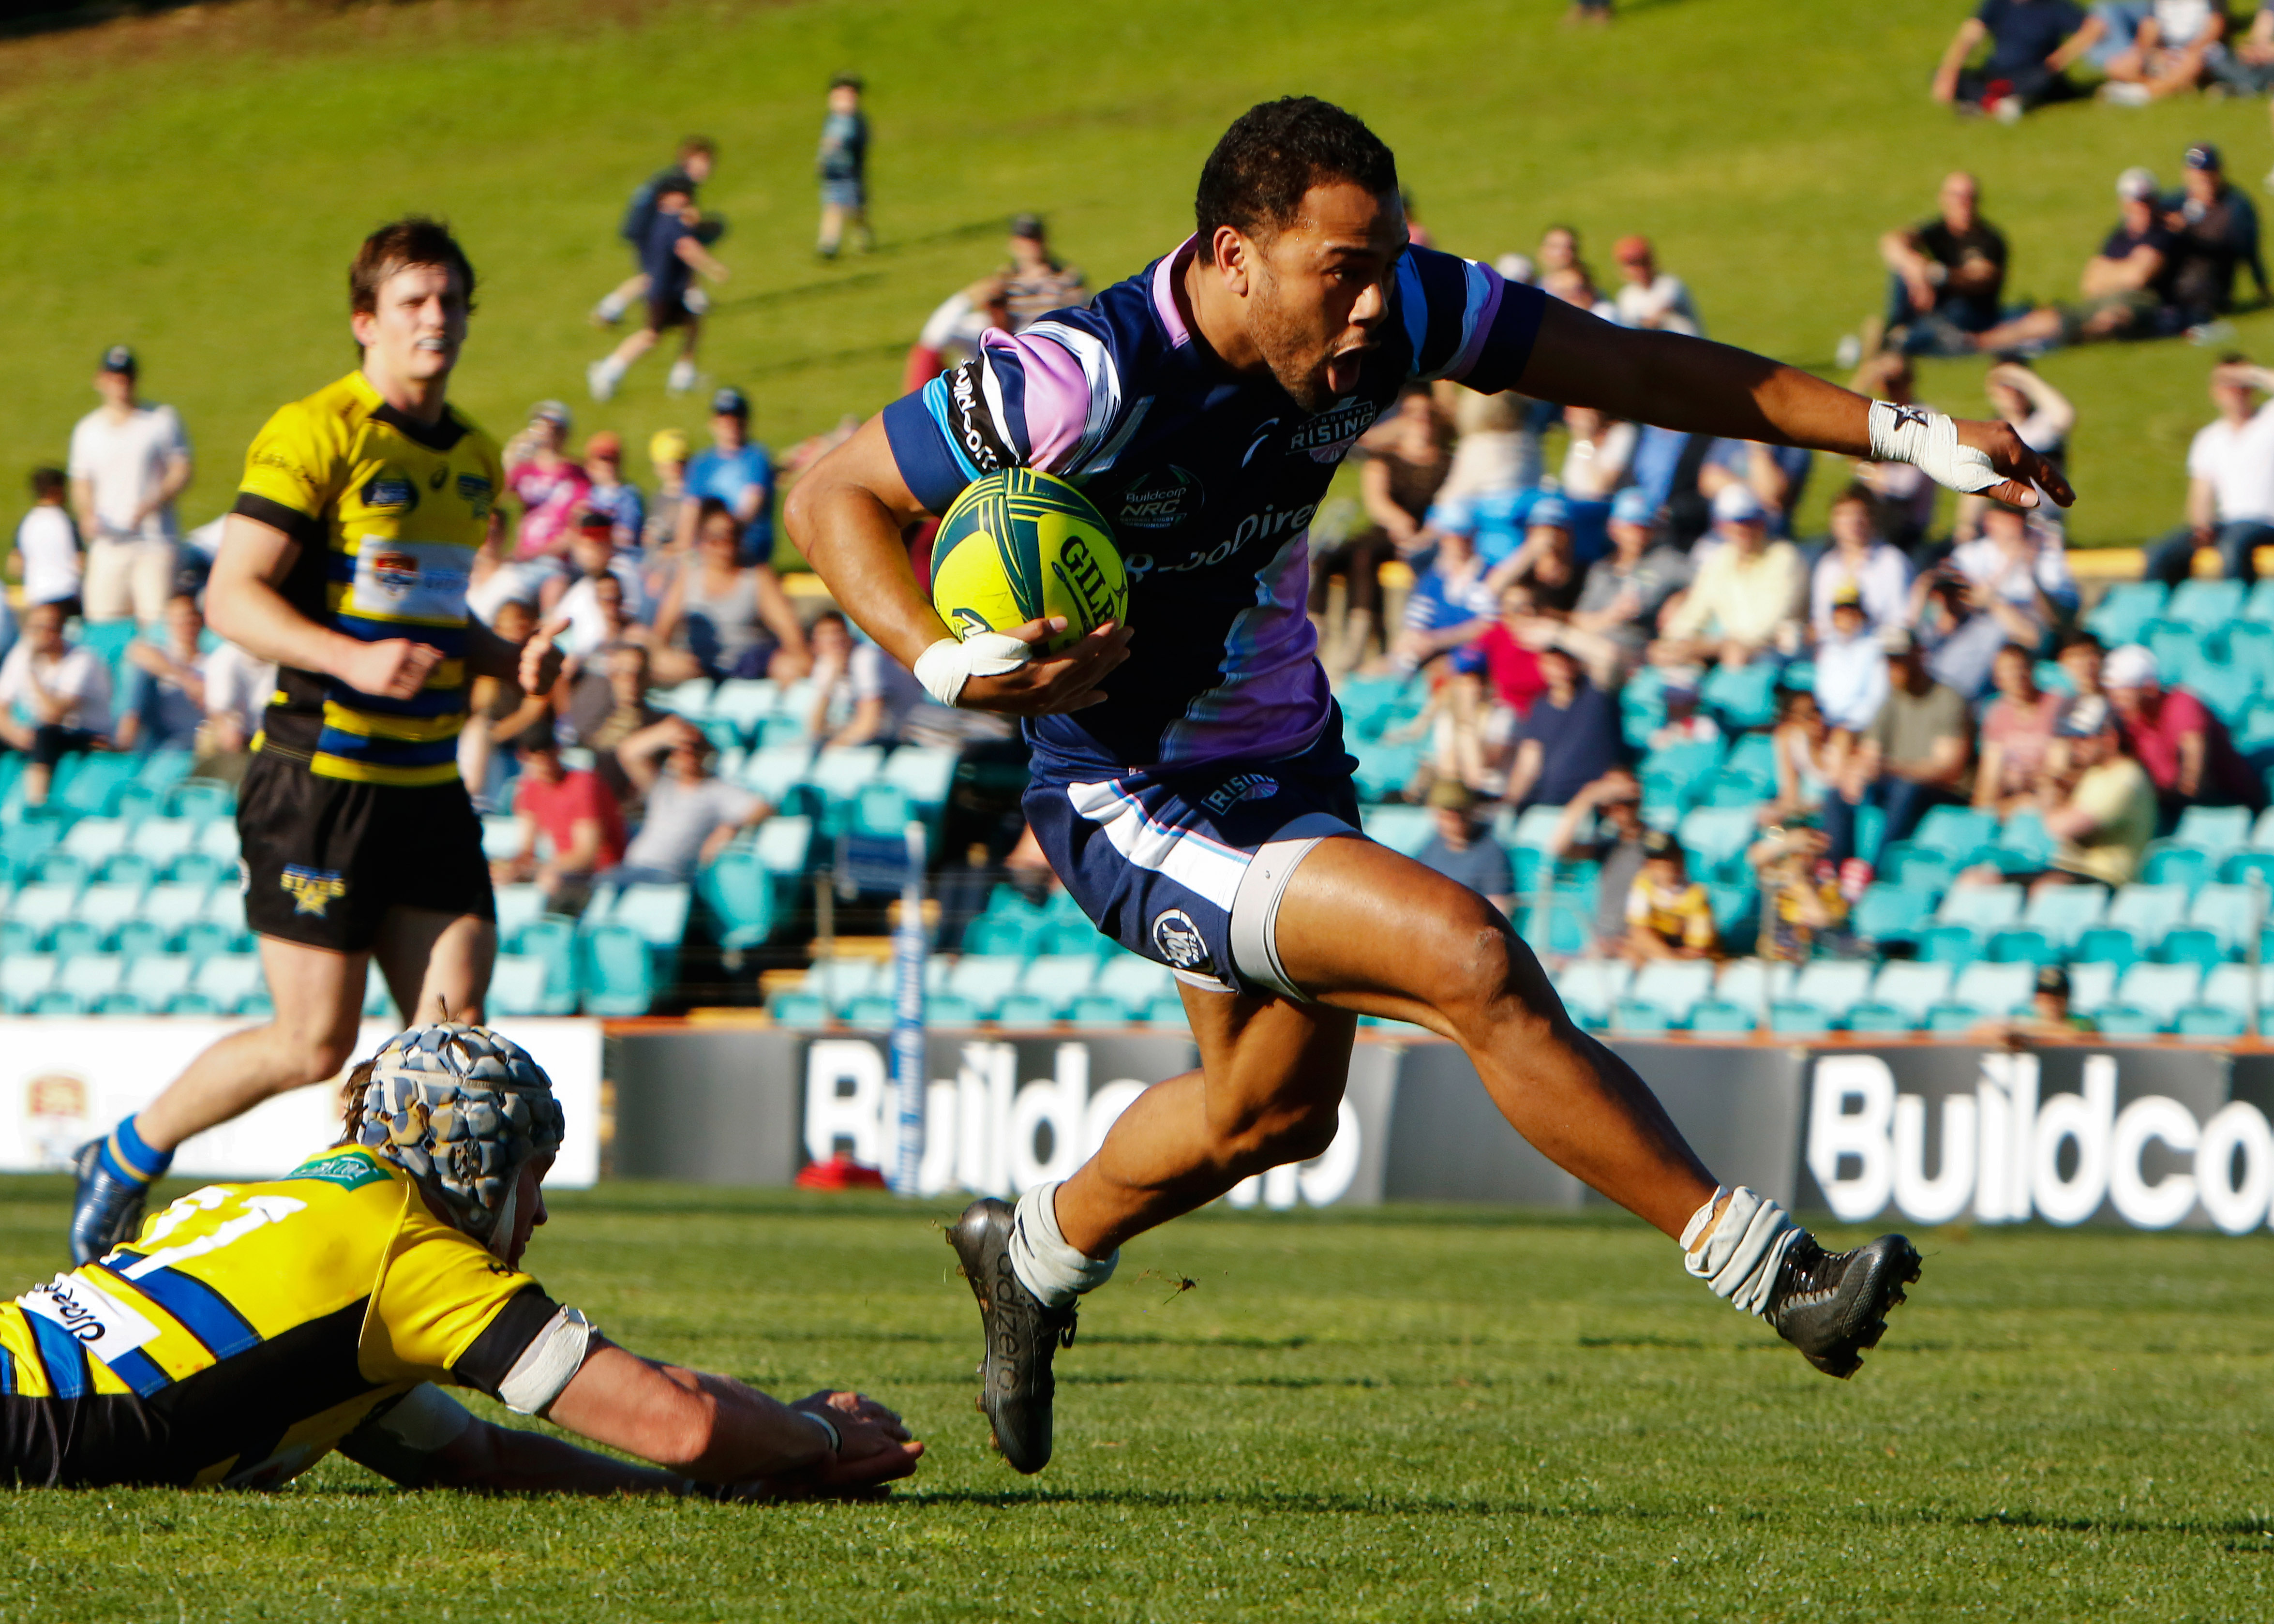 Melbourne Risings winger Talusa Veainu strides for the try line - Karen Watson Photography